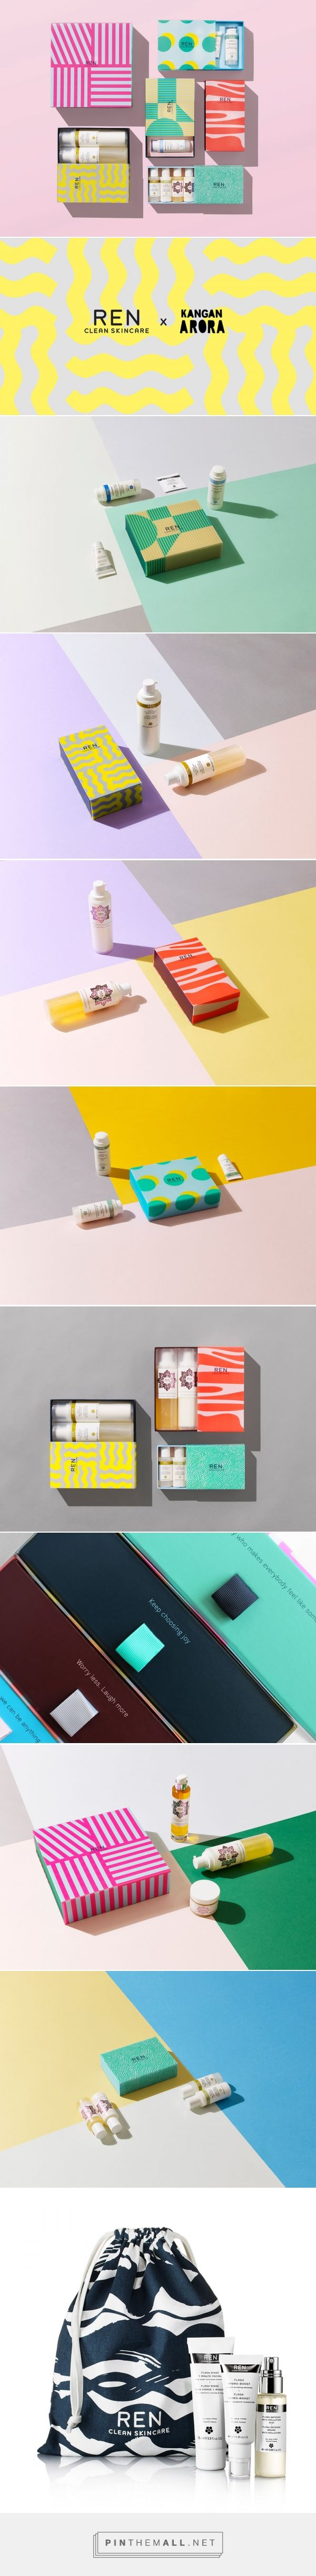 Kangan Agora for REN Skincare Christmas Package  / Designed by Kangan Arora in Collaboration with REN Skincare